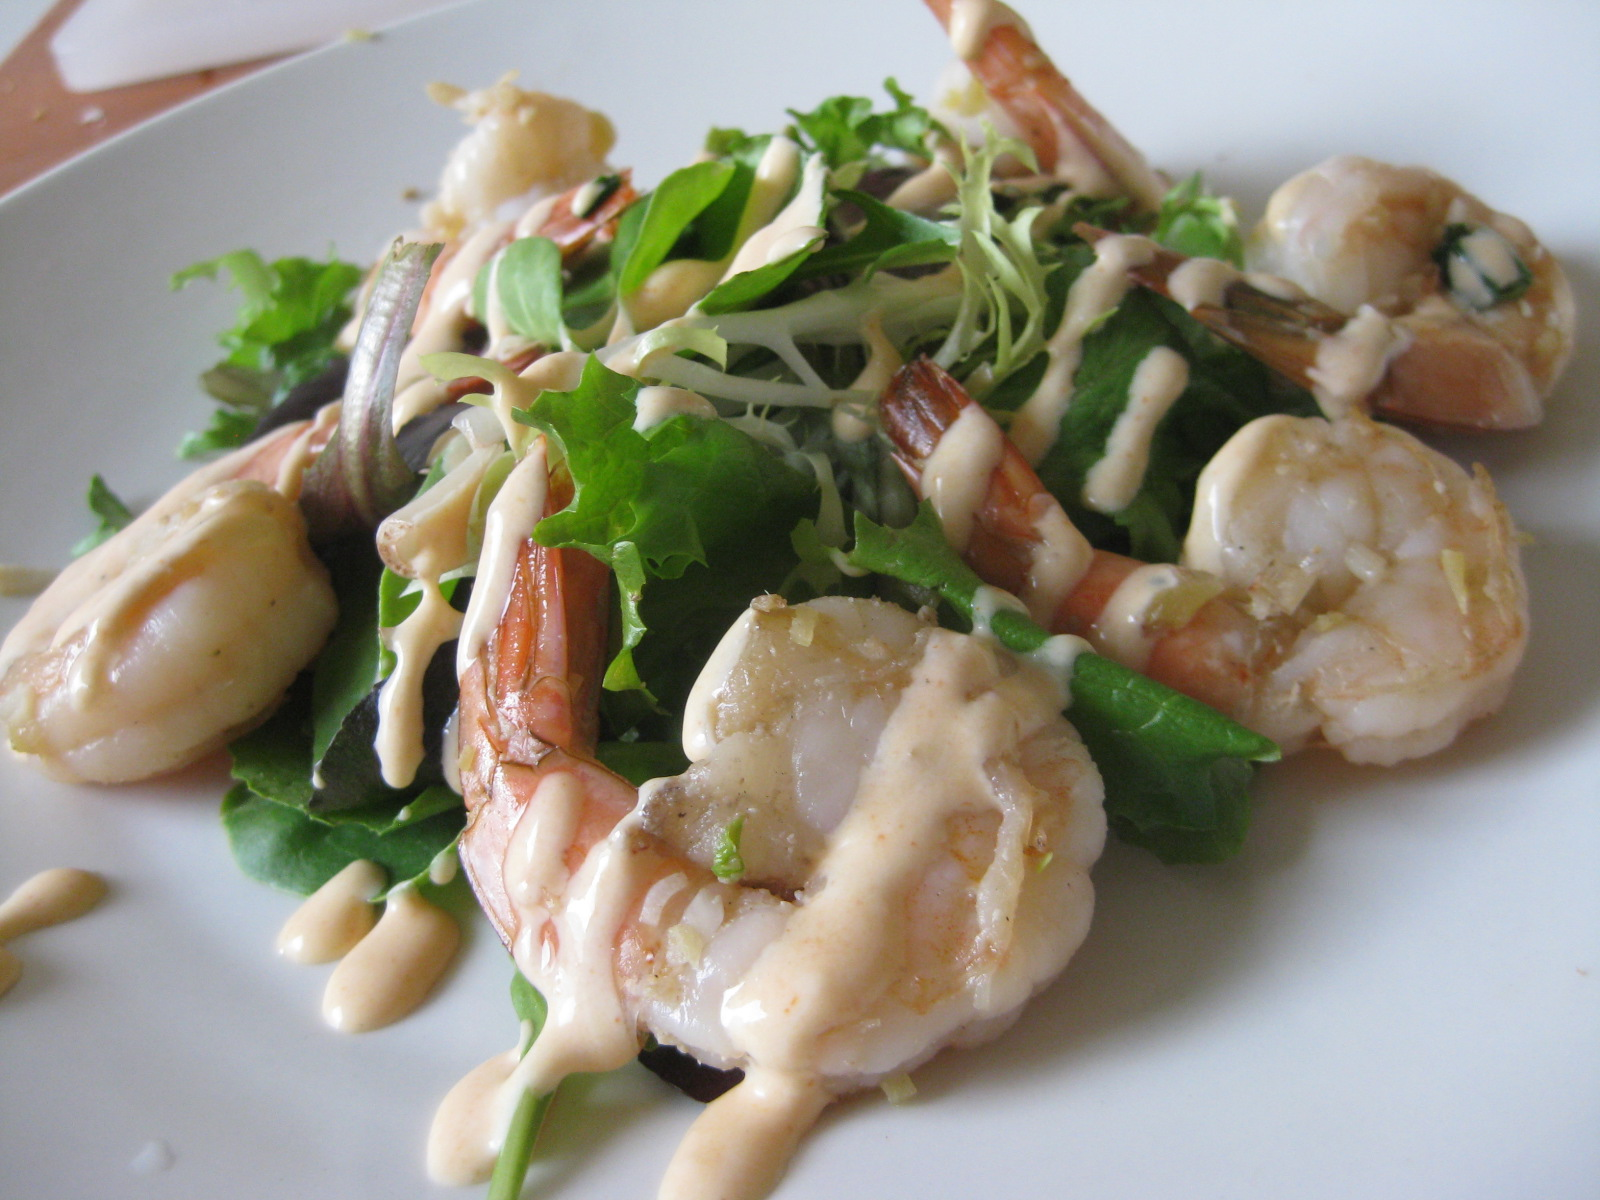 Garlic stir-fried shrimp over mixed greens with Sriracha-lime dressing.